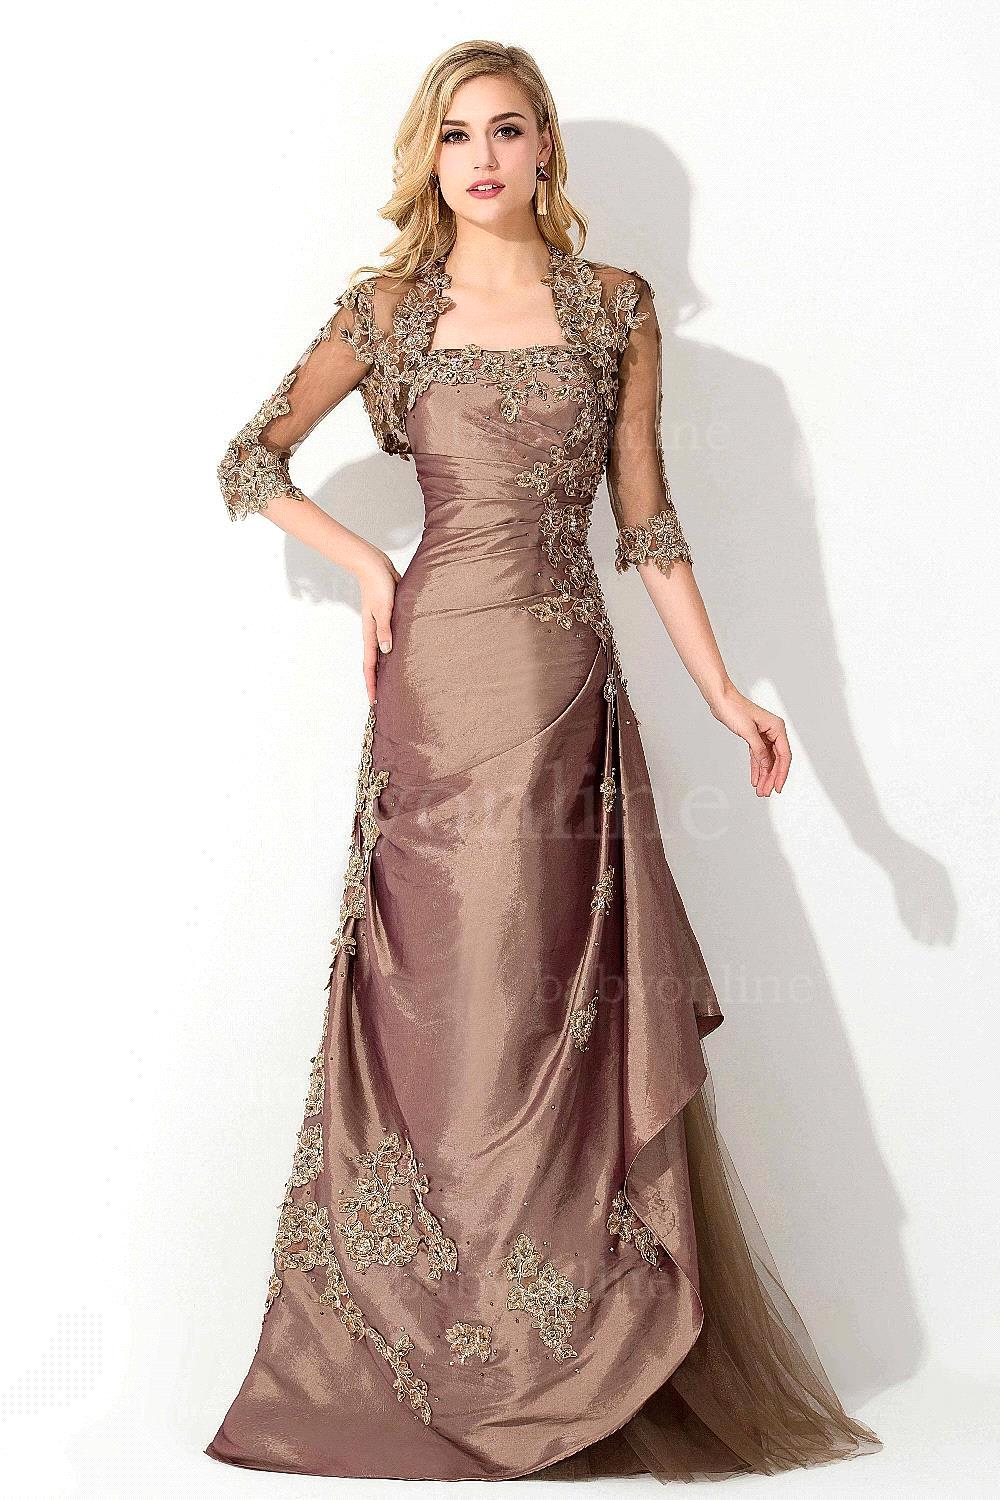 Plus Size Women Formal Evening Dresses With Jacket - Long Dresses ...